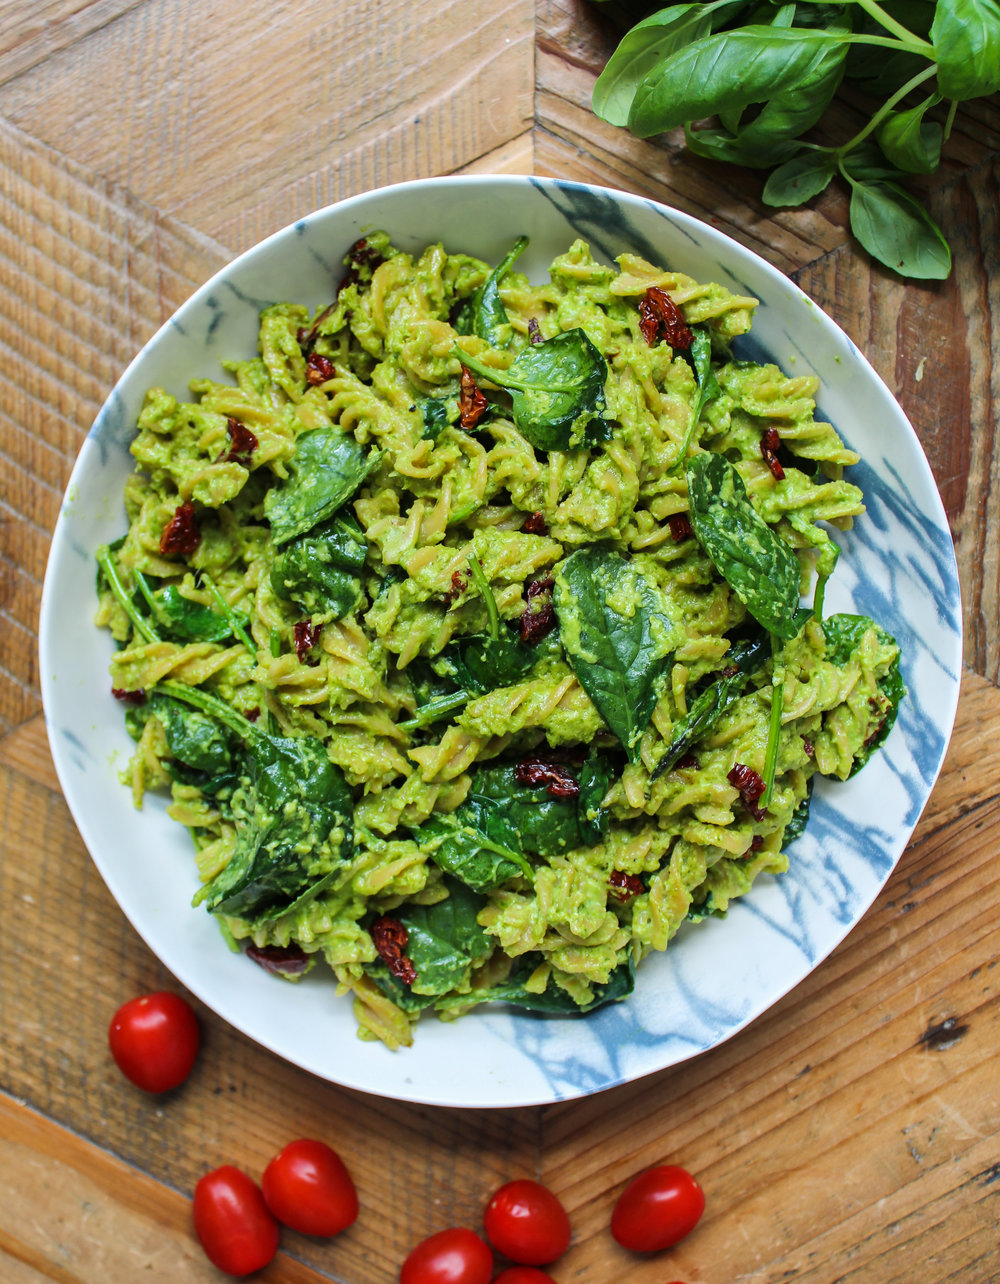 PESTO PASTA WITH SUNDRIED TOMATOES - vegan, dairy free, gluten free, egg free, healthy, high protein, easy, greens, recoveringraw.com